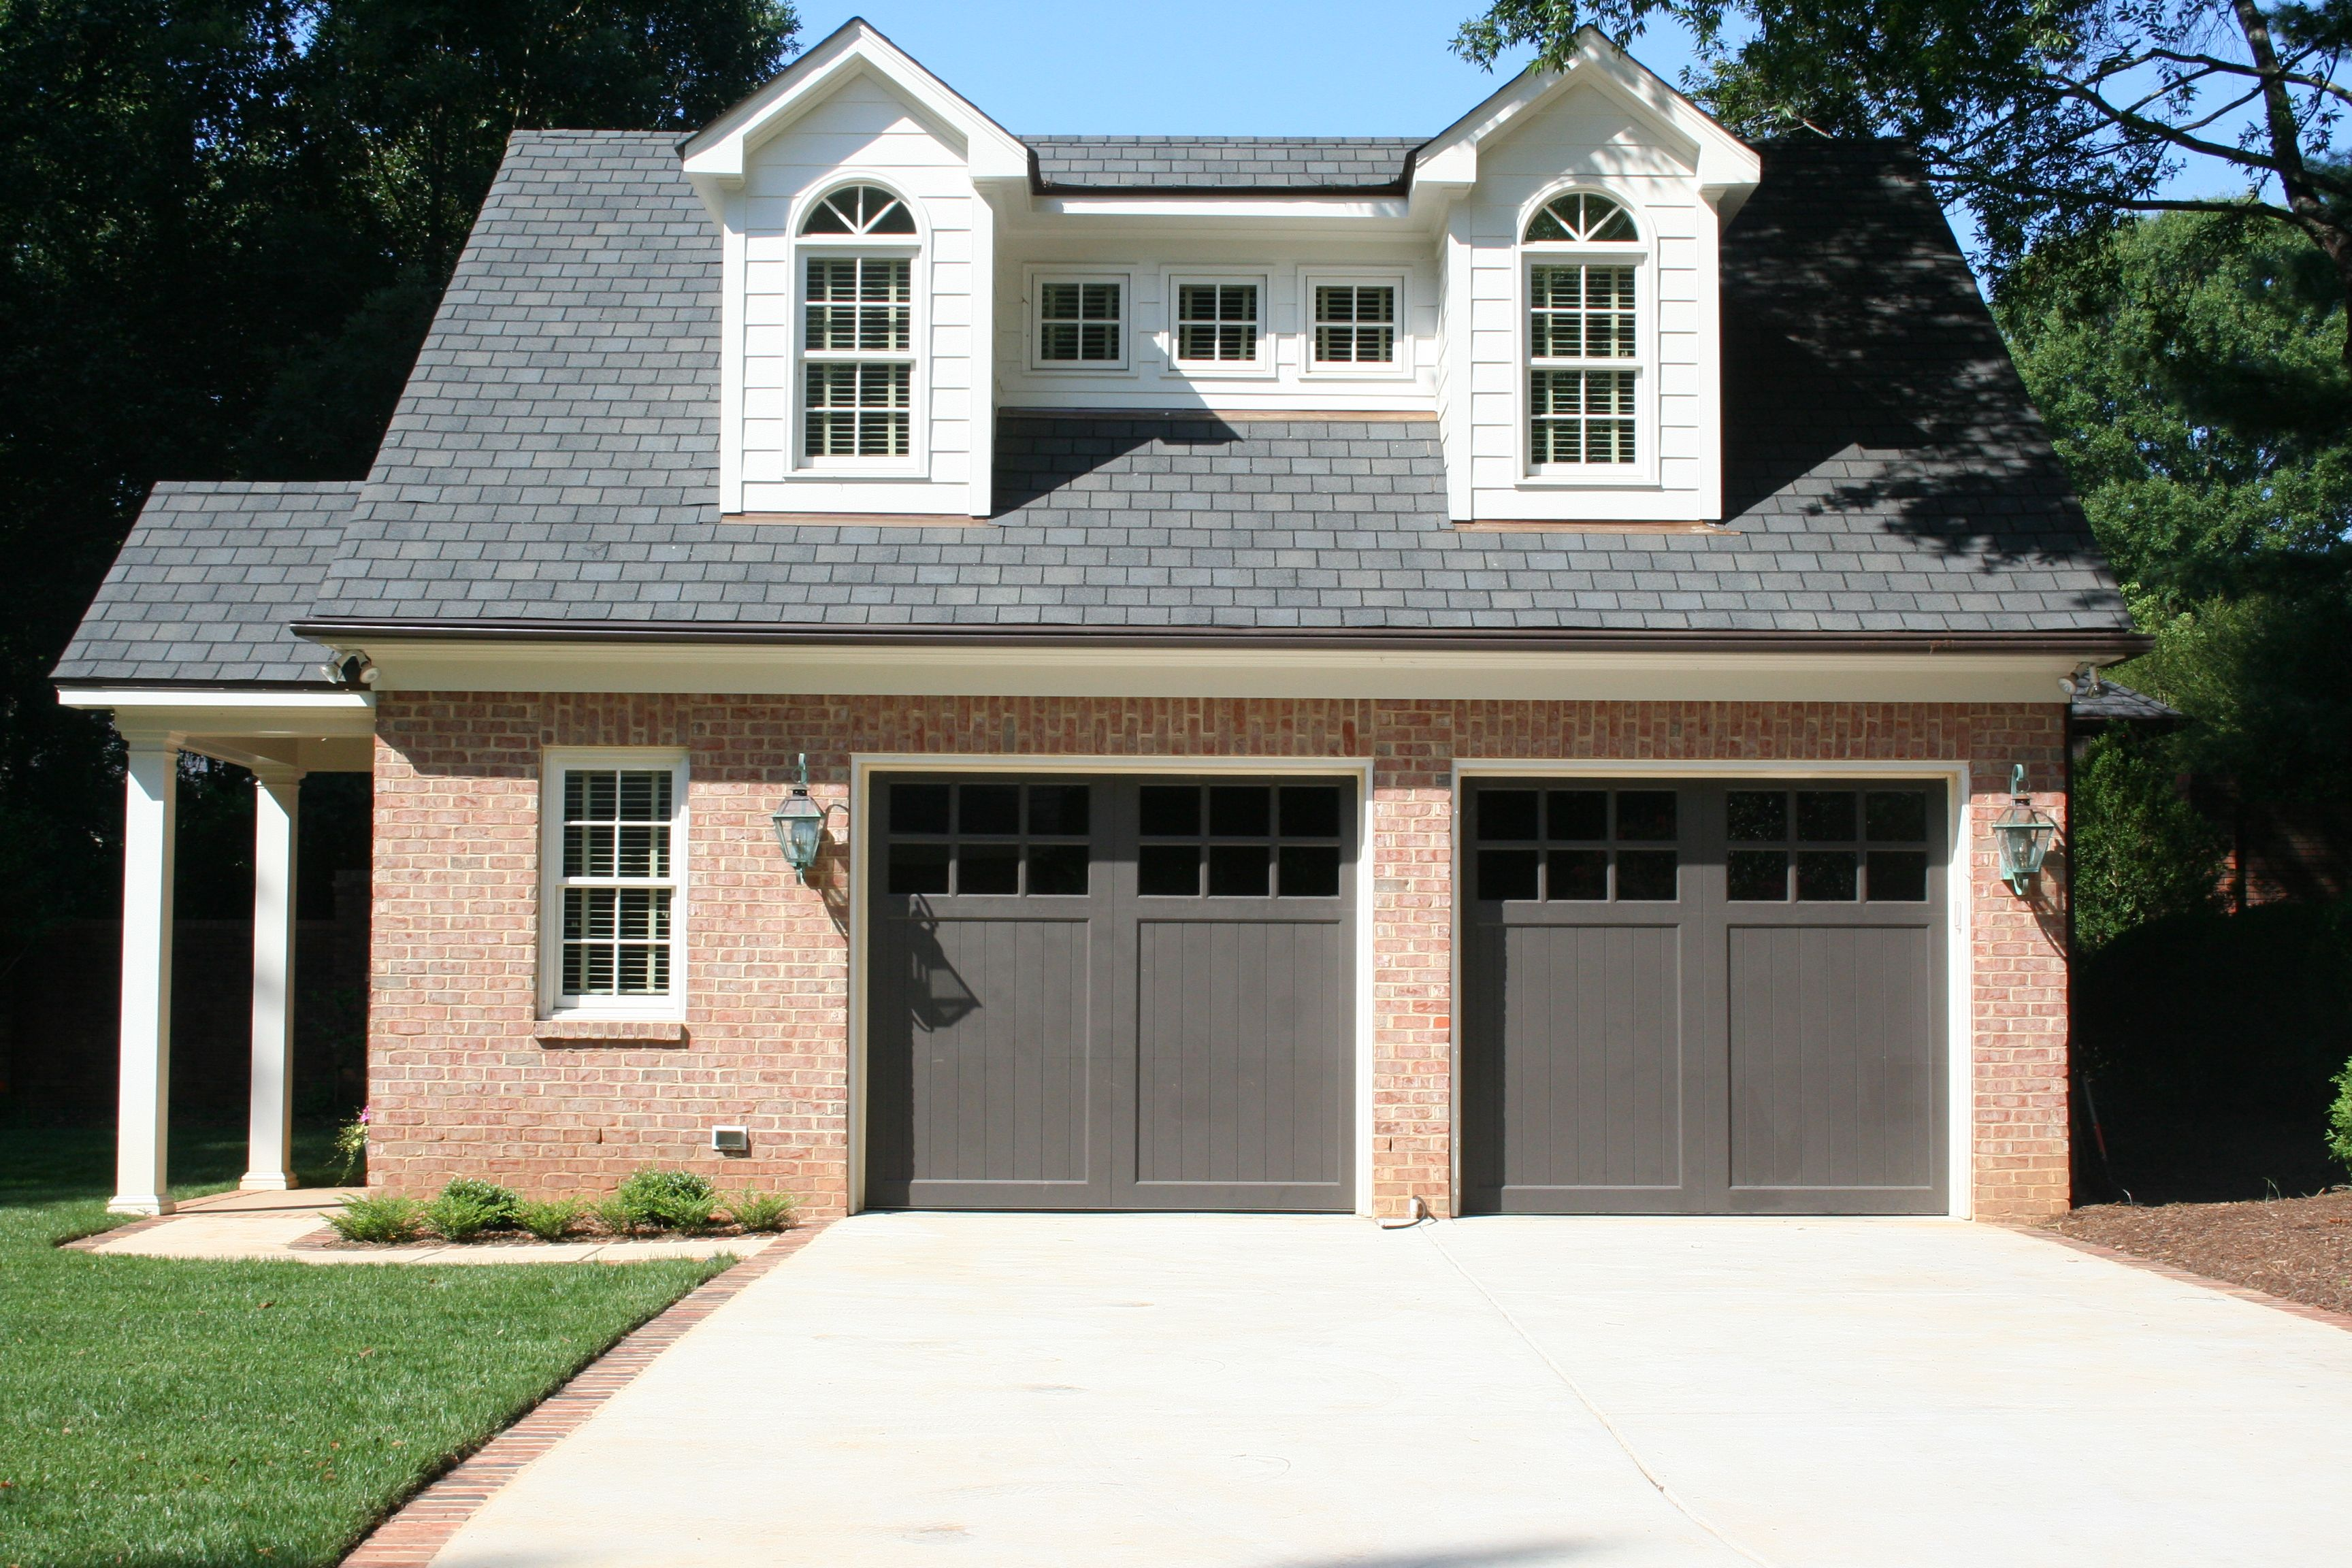 2 Car Garage With Upper Level In Law Suite